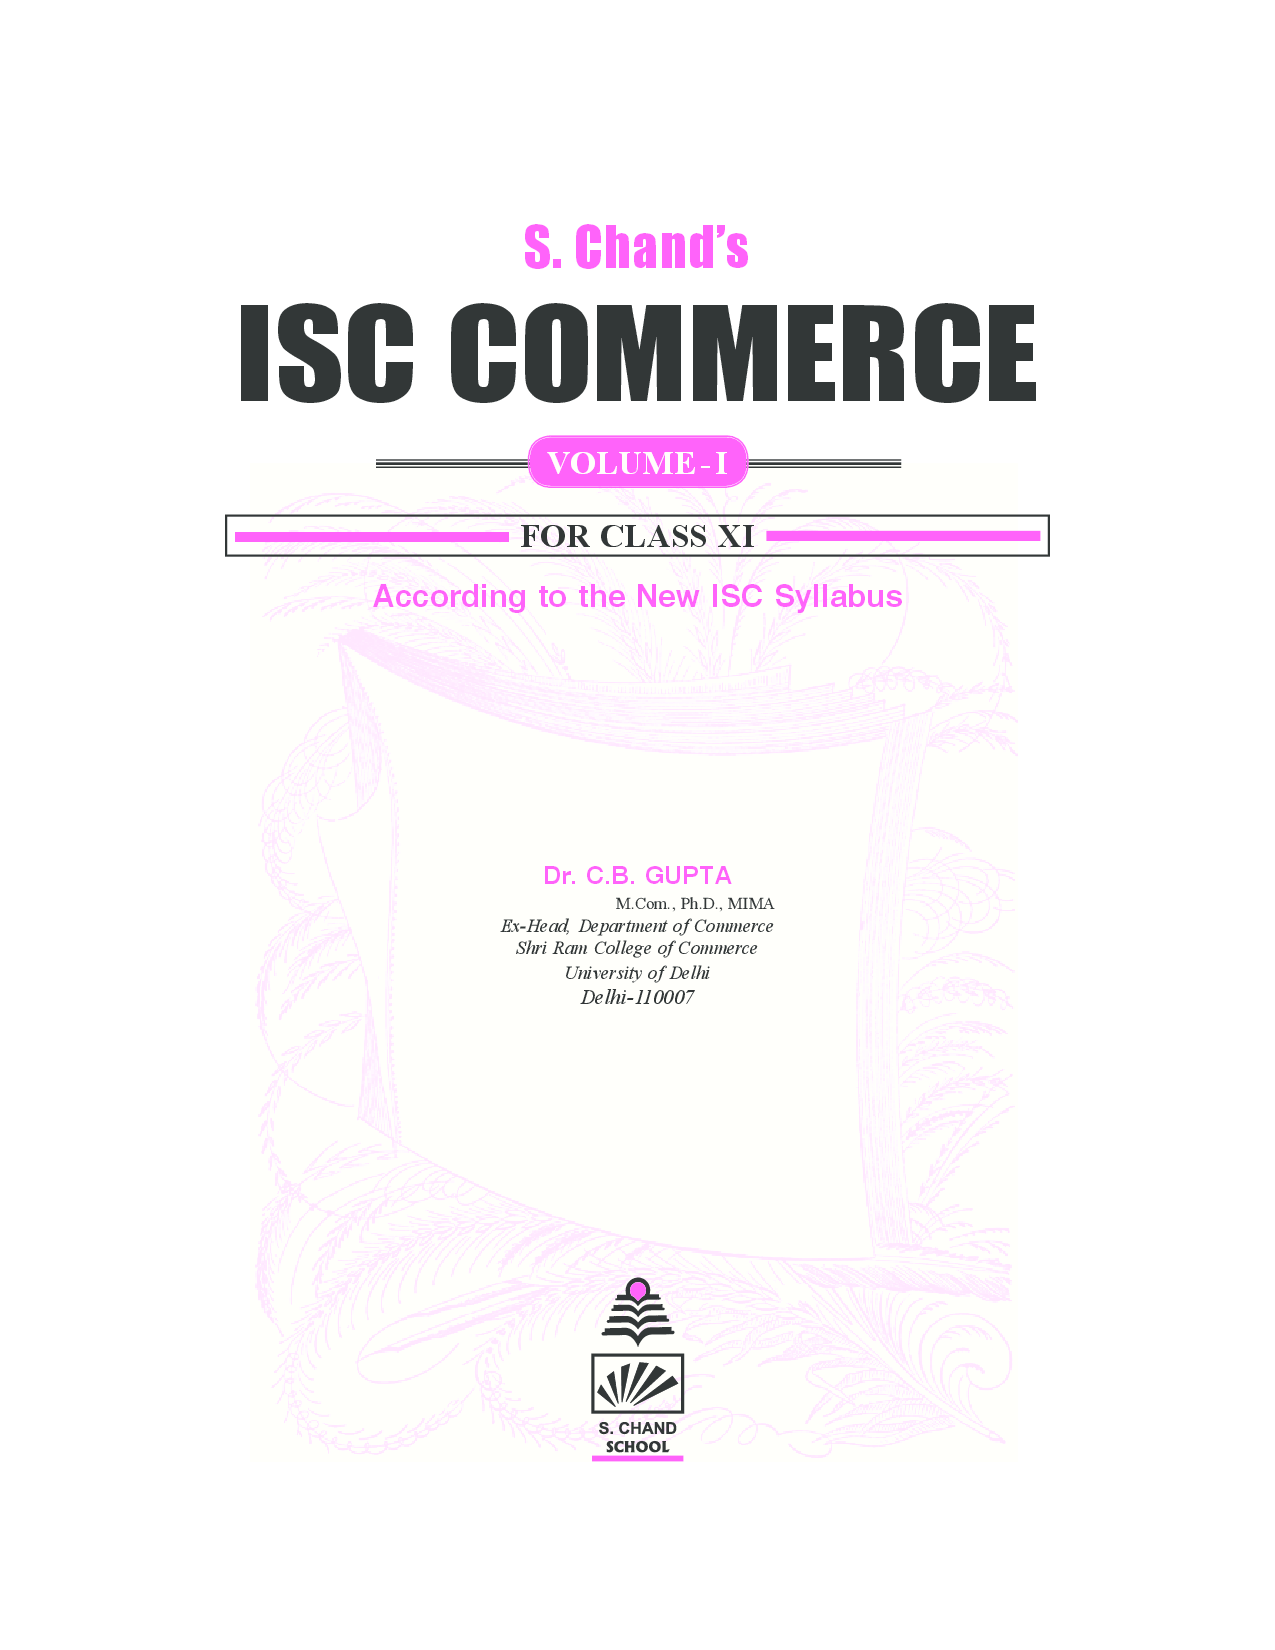 Download ISC Commerce For Class XI Vol I by C B Gupta PDF